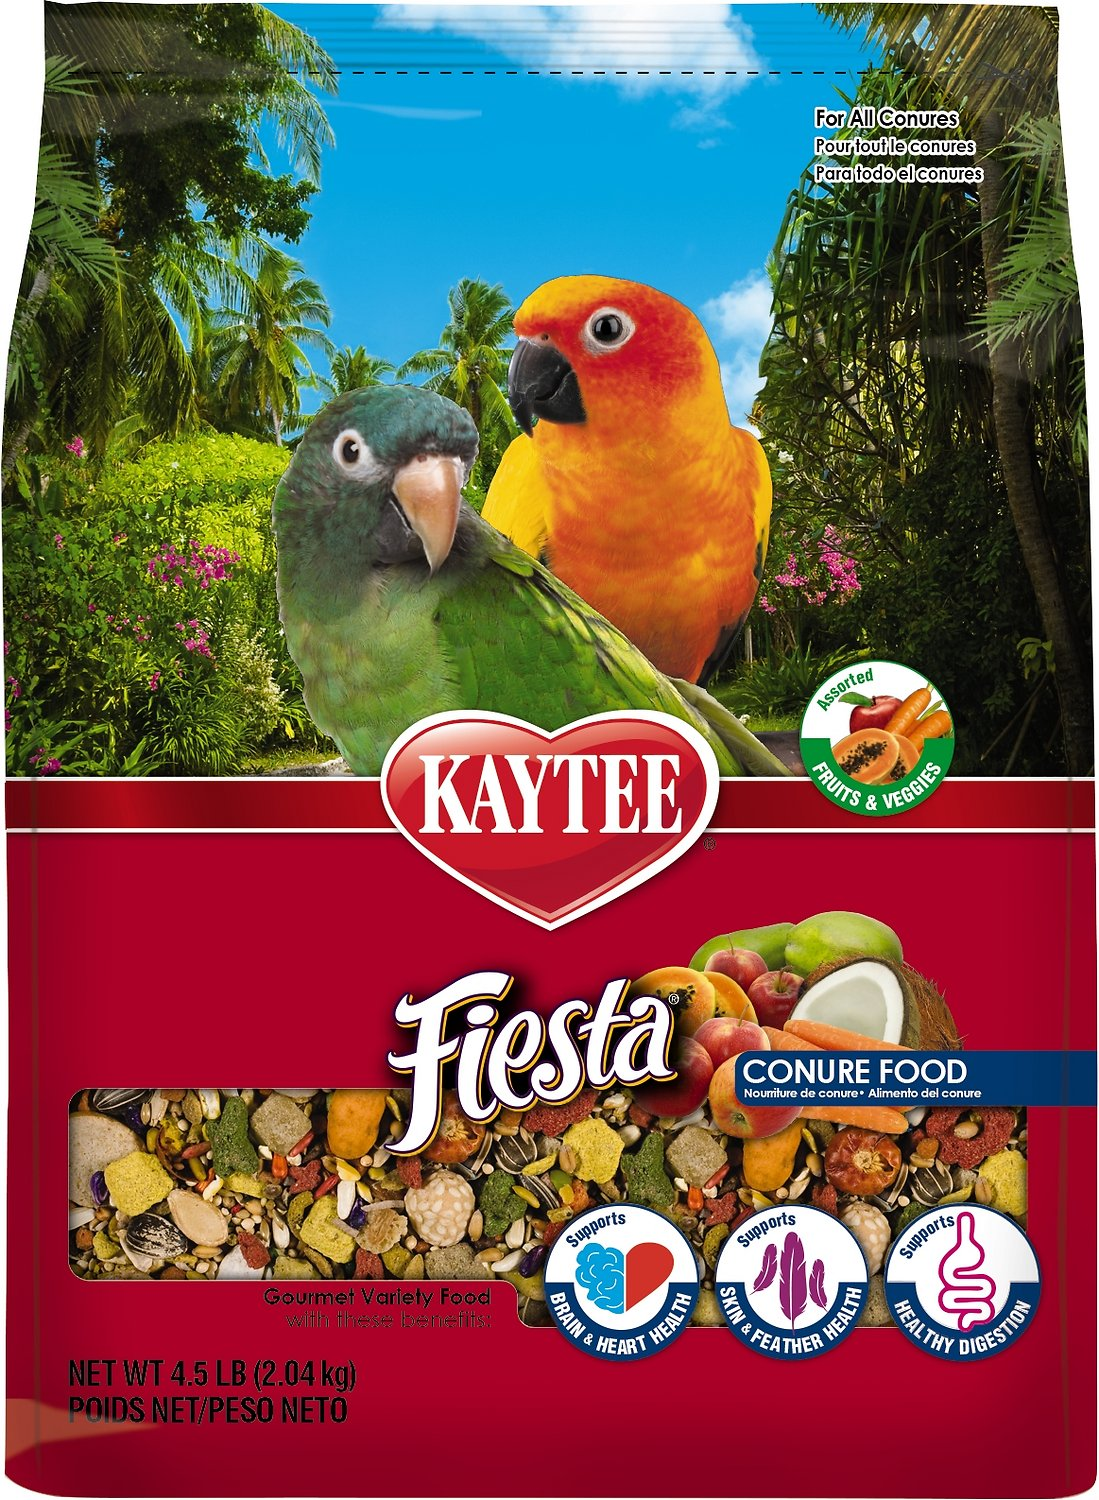 Kaytee Fiesta Variety Mix Conure Bird Food, 4.5-lb bag (Weights: 4.5 pounds) Image